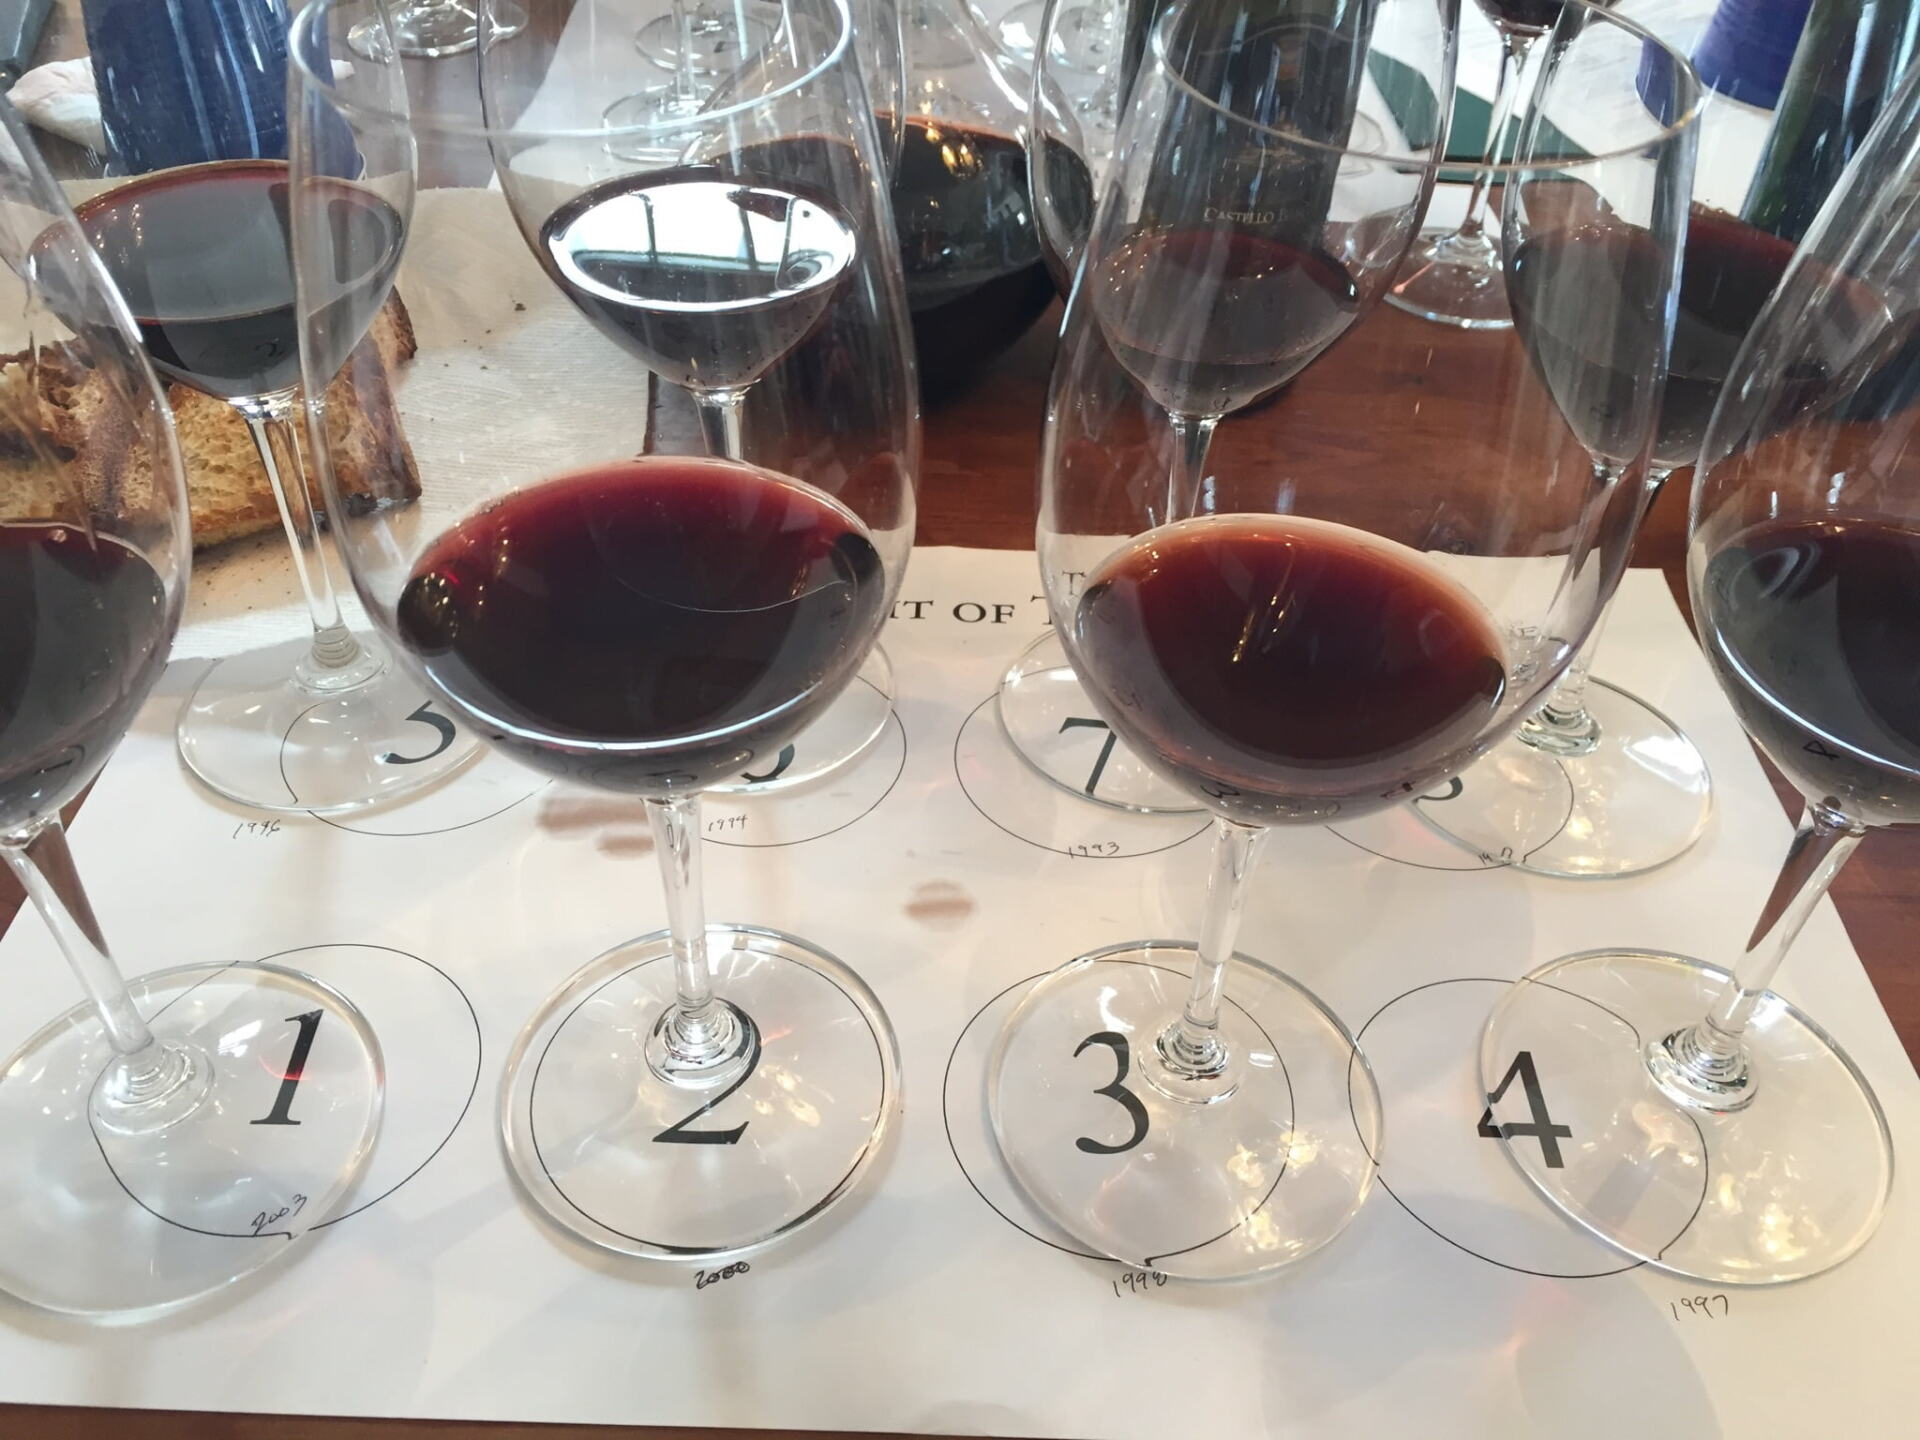 Wine glasses filled with red wine on a numbered tasting sheet